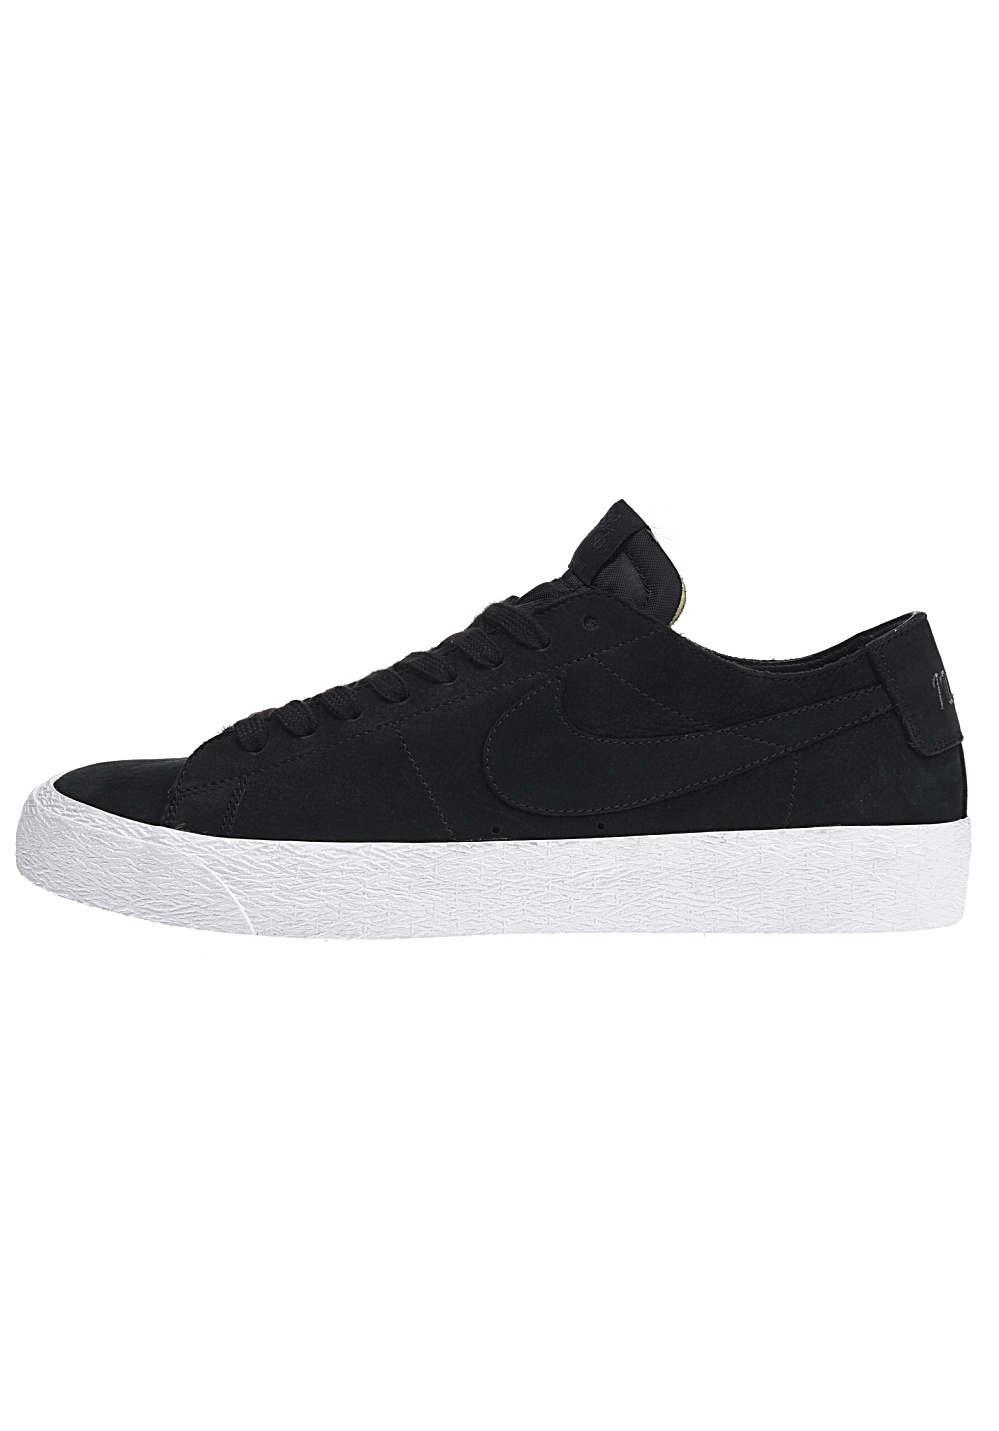 NIKE SB Zoom Blazer Low Decon Sneakers for Men Black